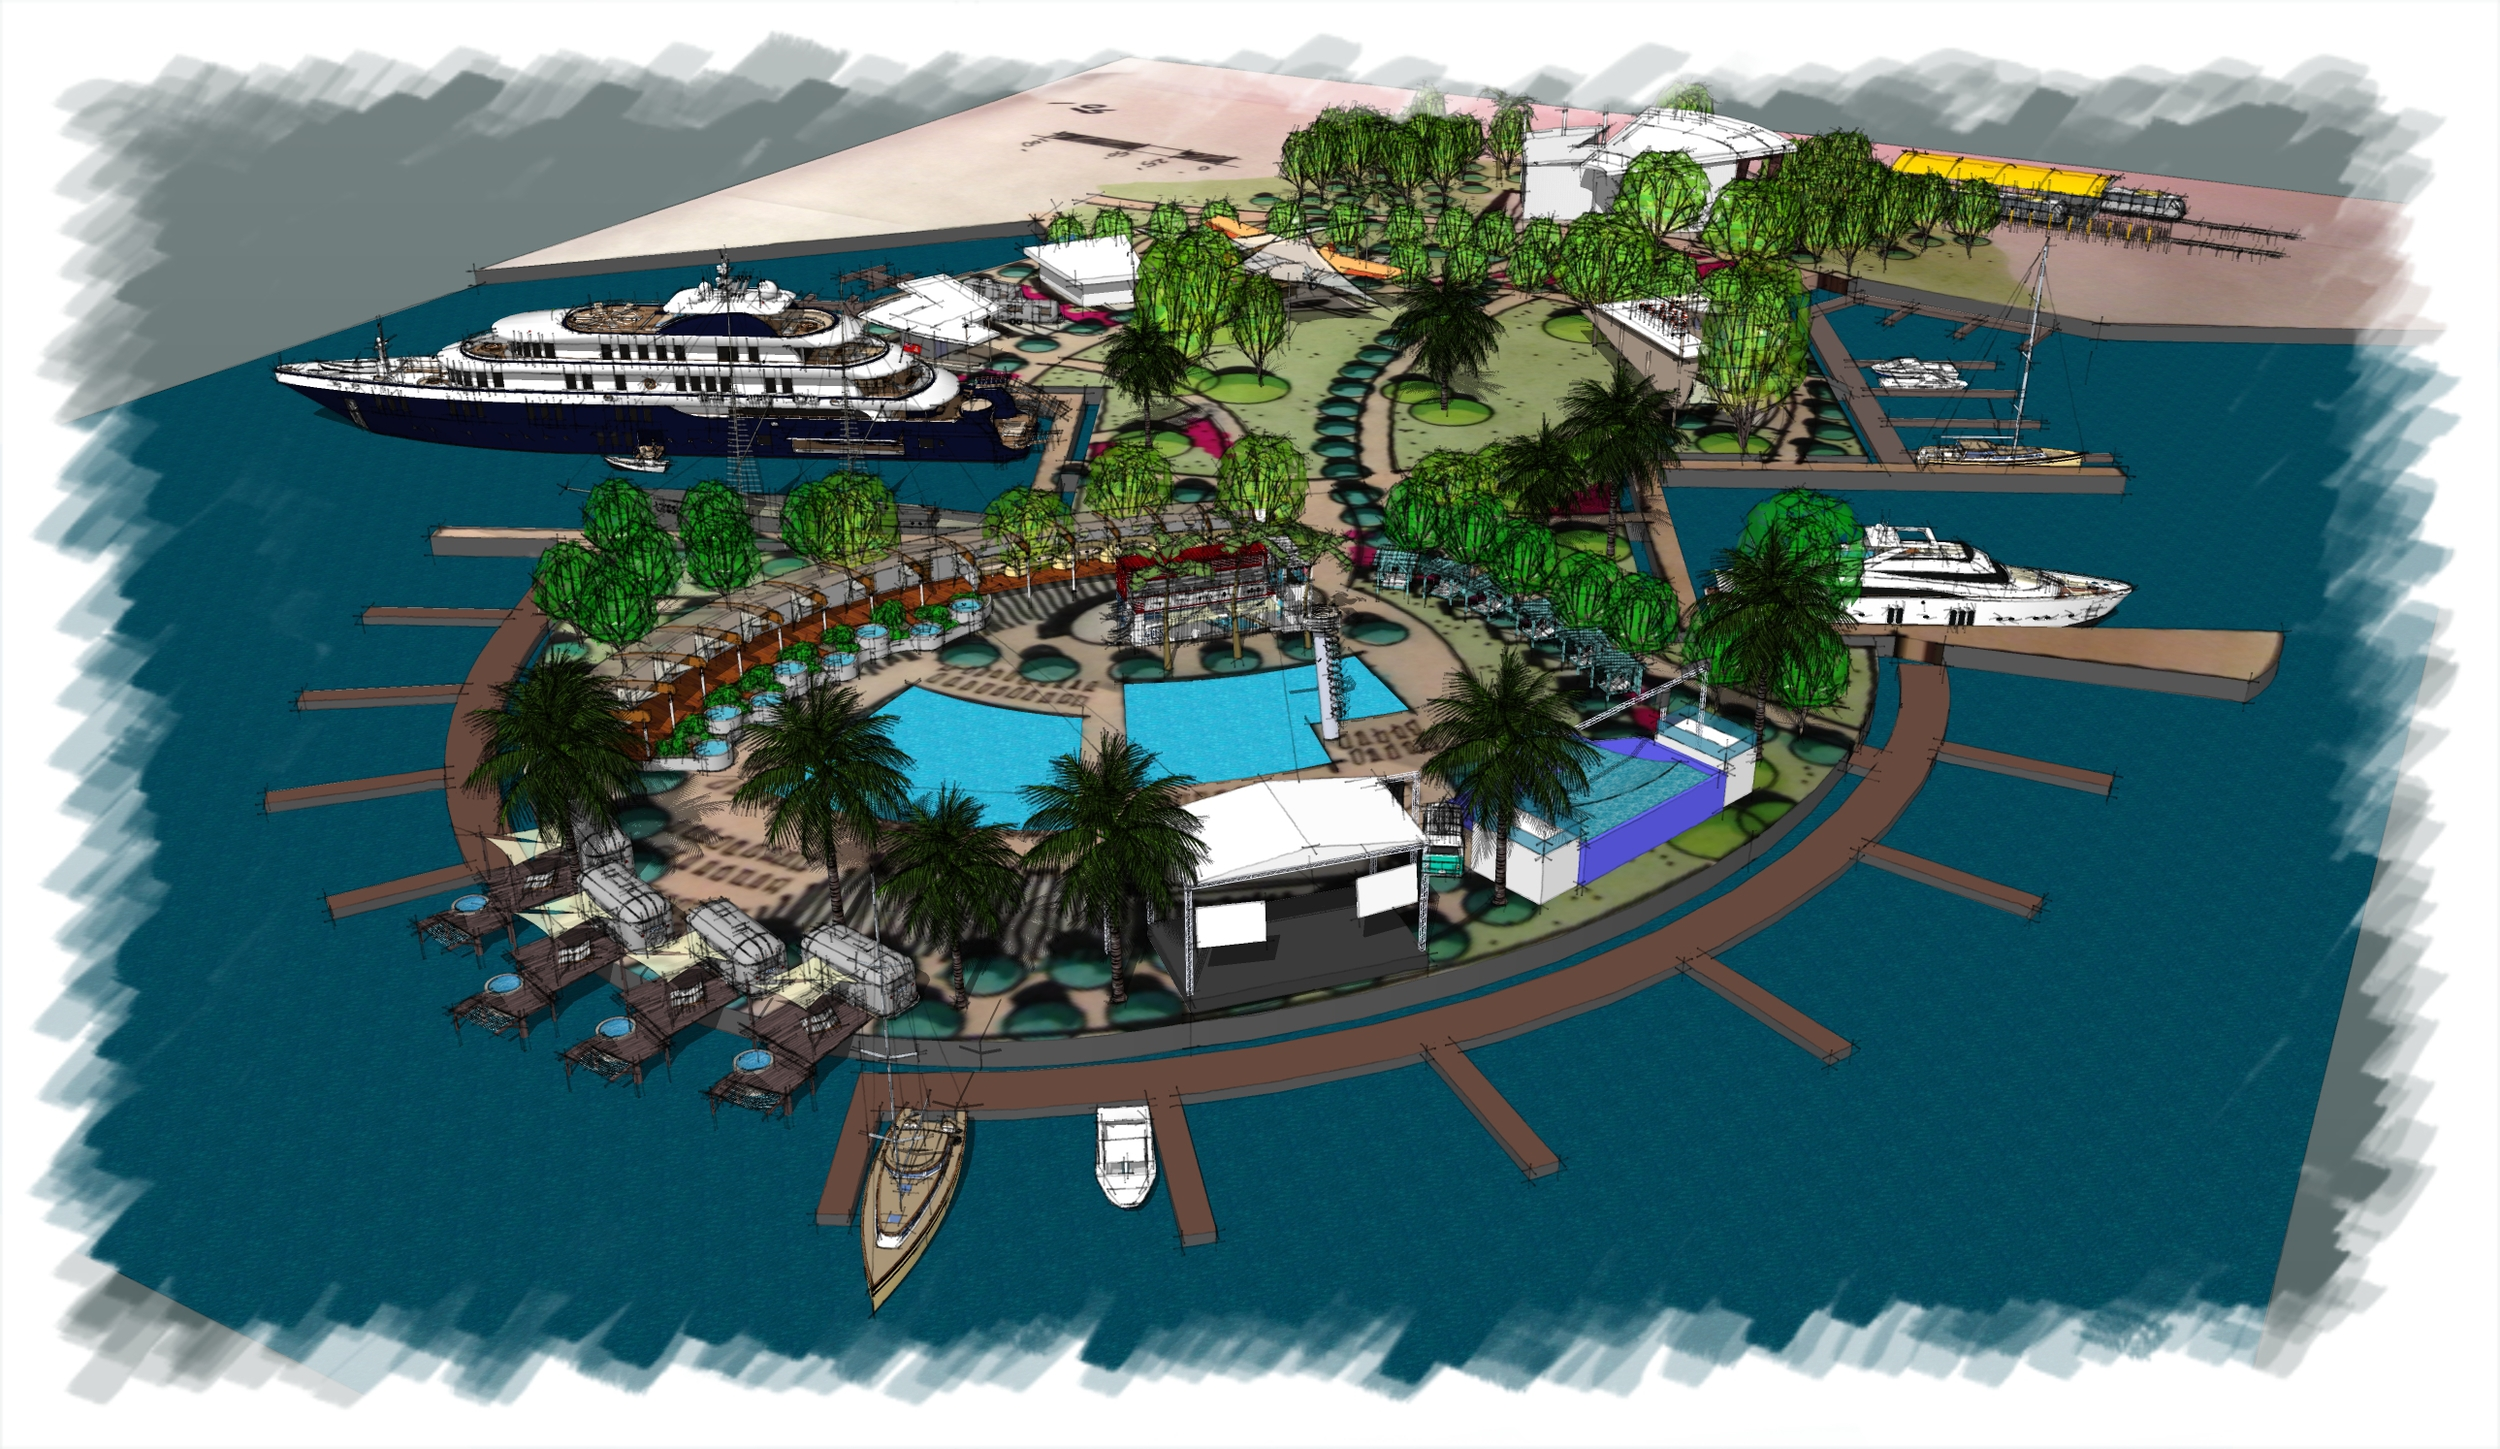 STUDIO GRANDE MARINA AND POOL CLUB